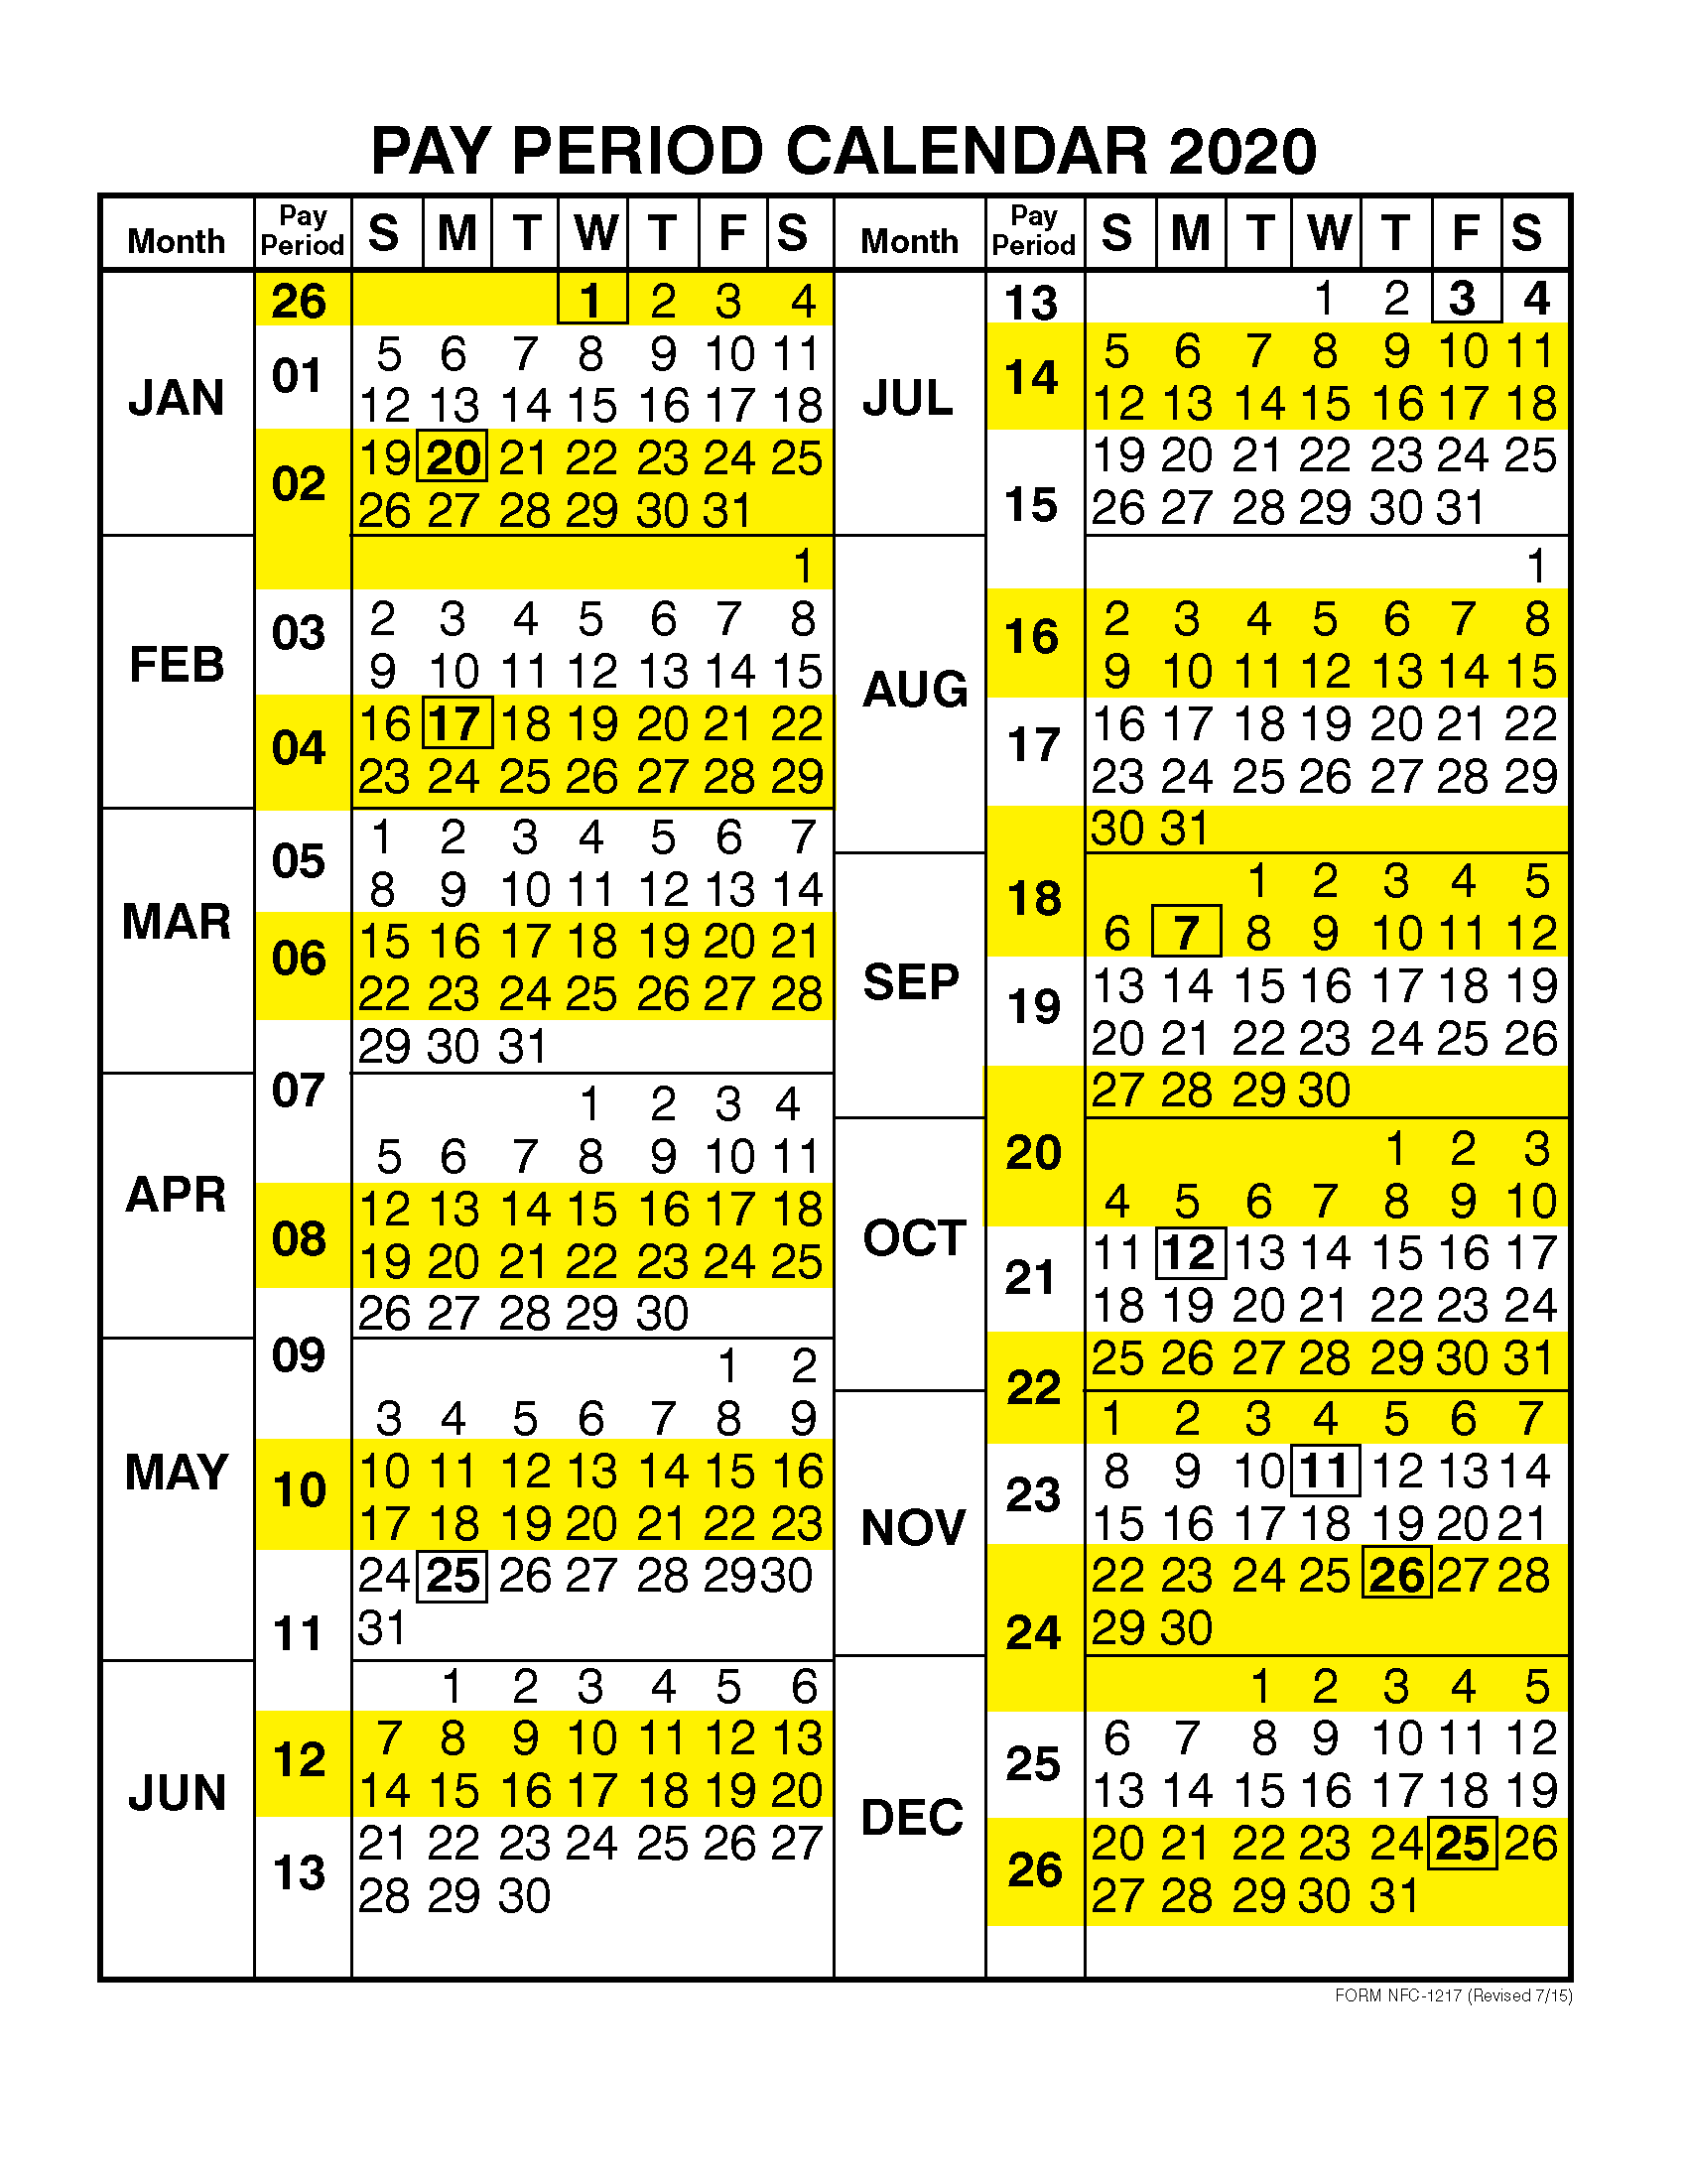 Pay Period Calendar 2020 By Calendar Year | Free Printable within Pay Period Calendar 2020 Opm